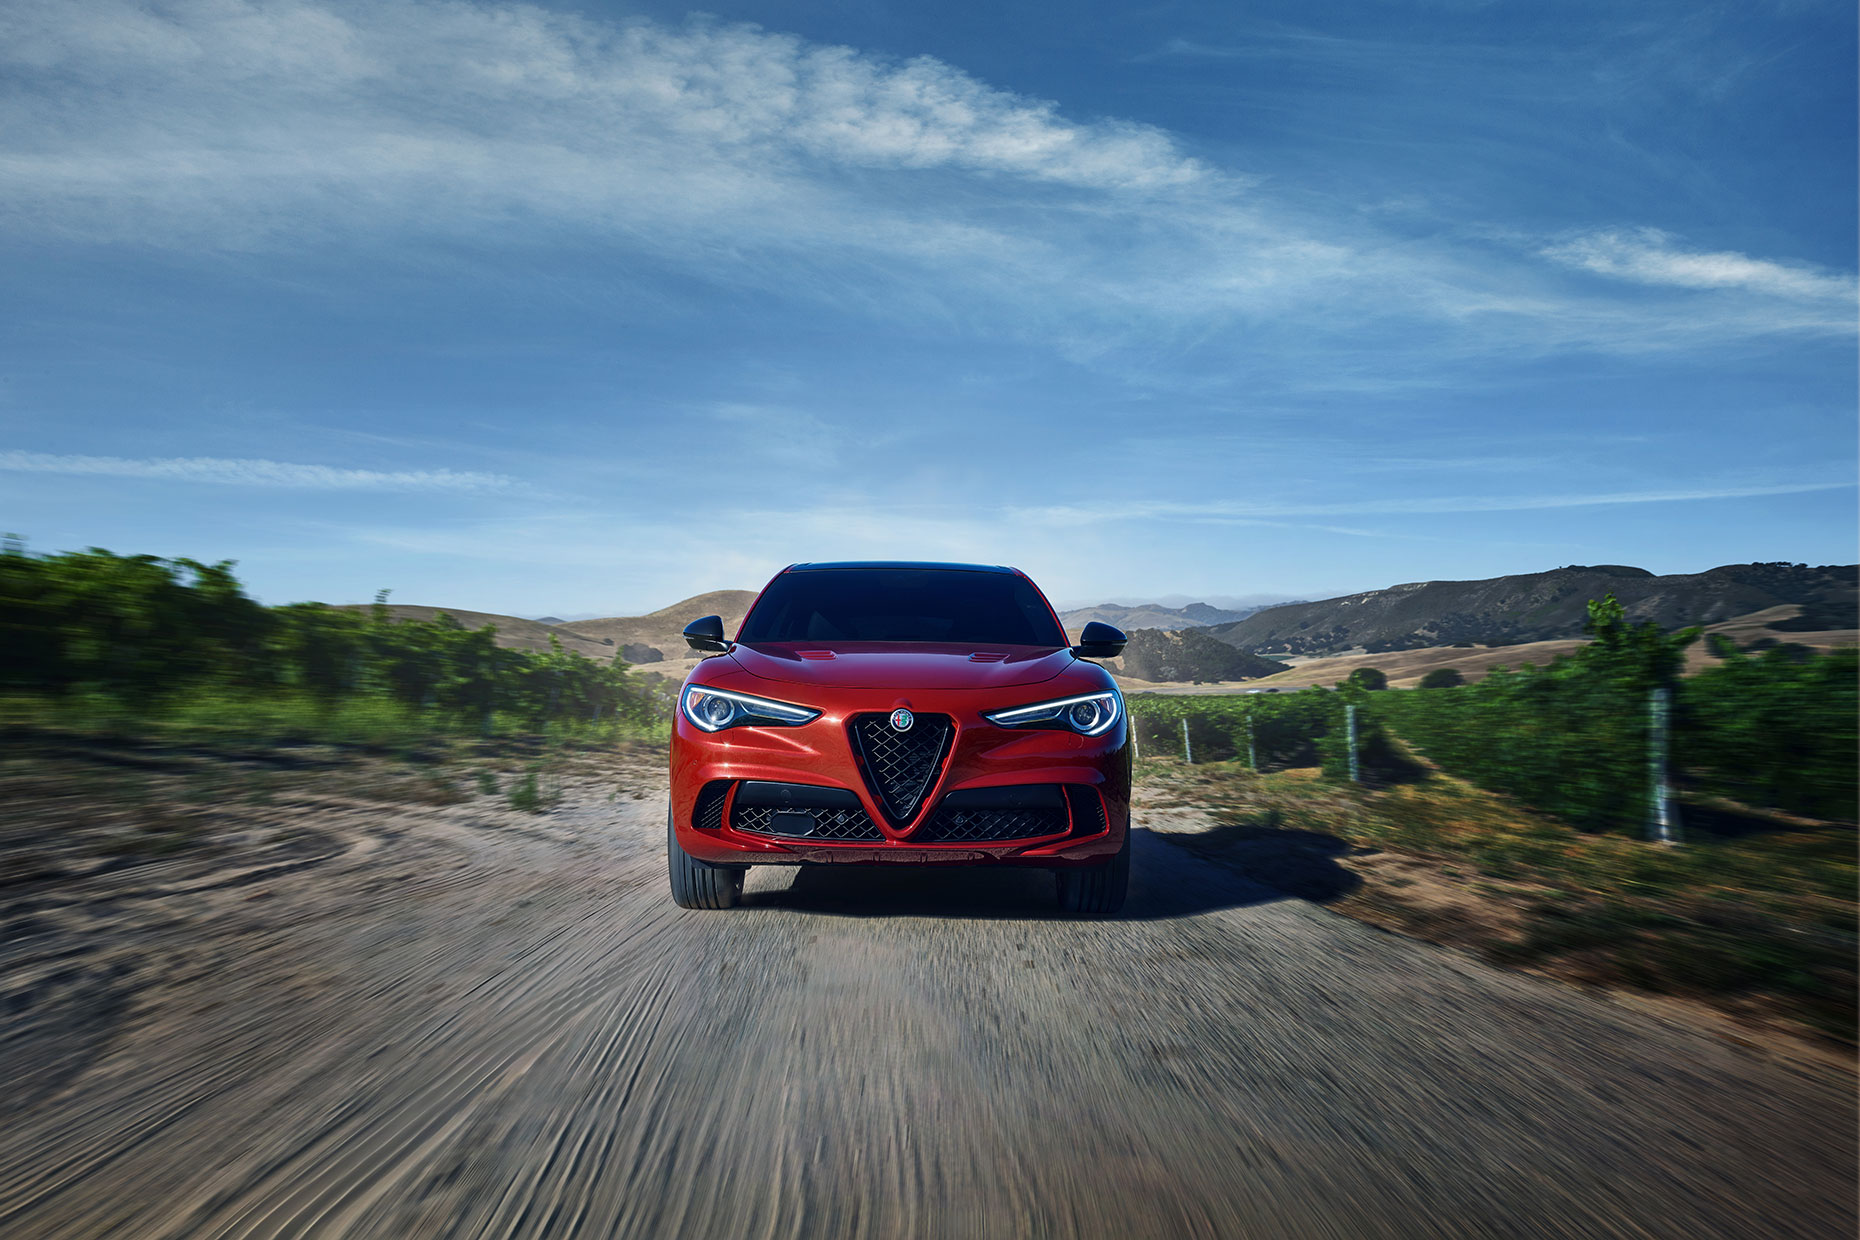 Alfa_Romeo_Vineyard_Stelvio_EXT_Wide_5929_v1